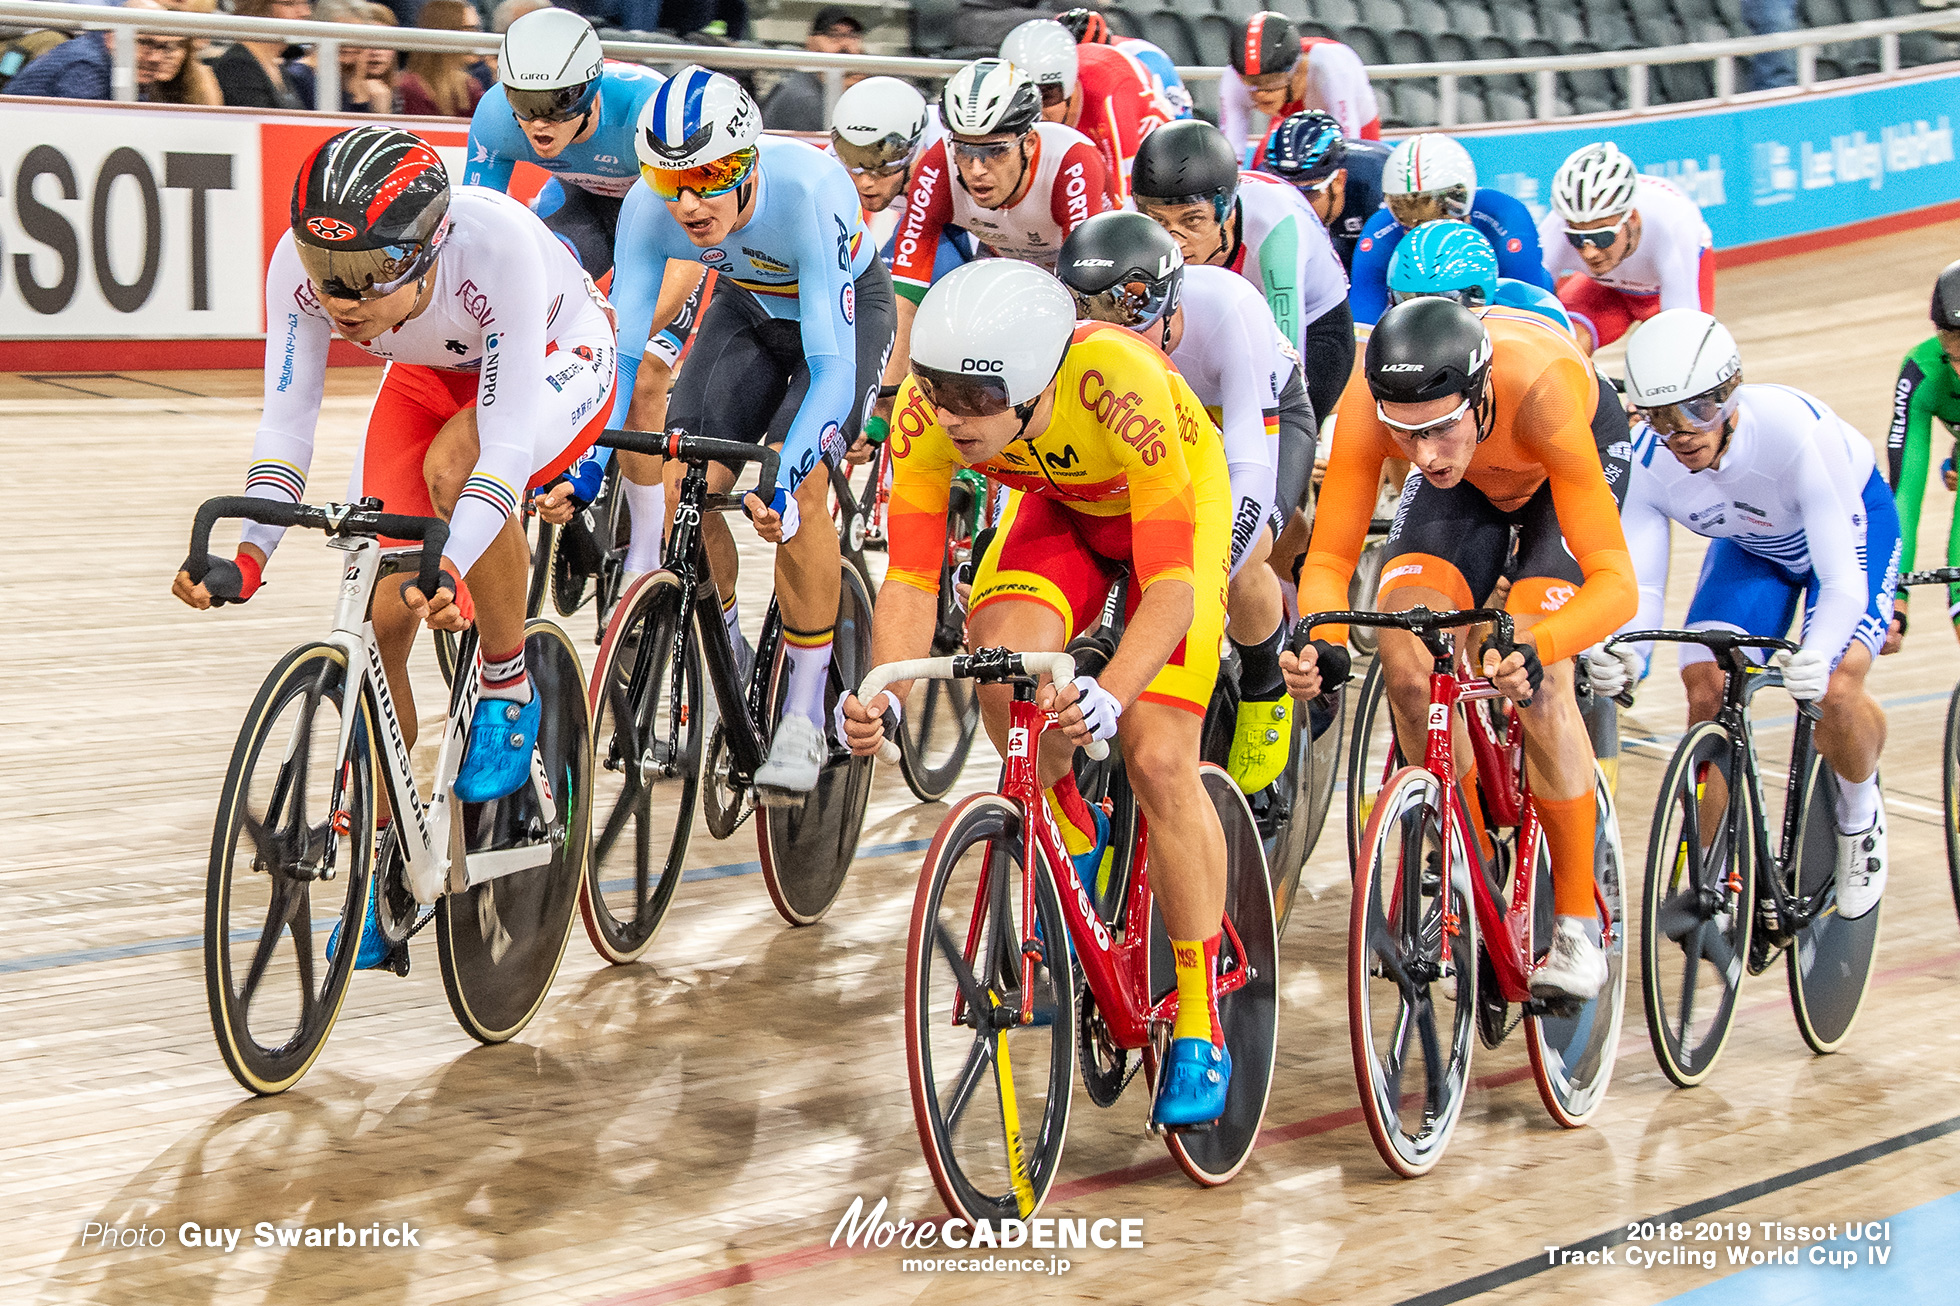 Men's Omnium/Final/2018-2019 Track Cycling World Cup IV London